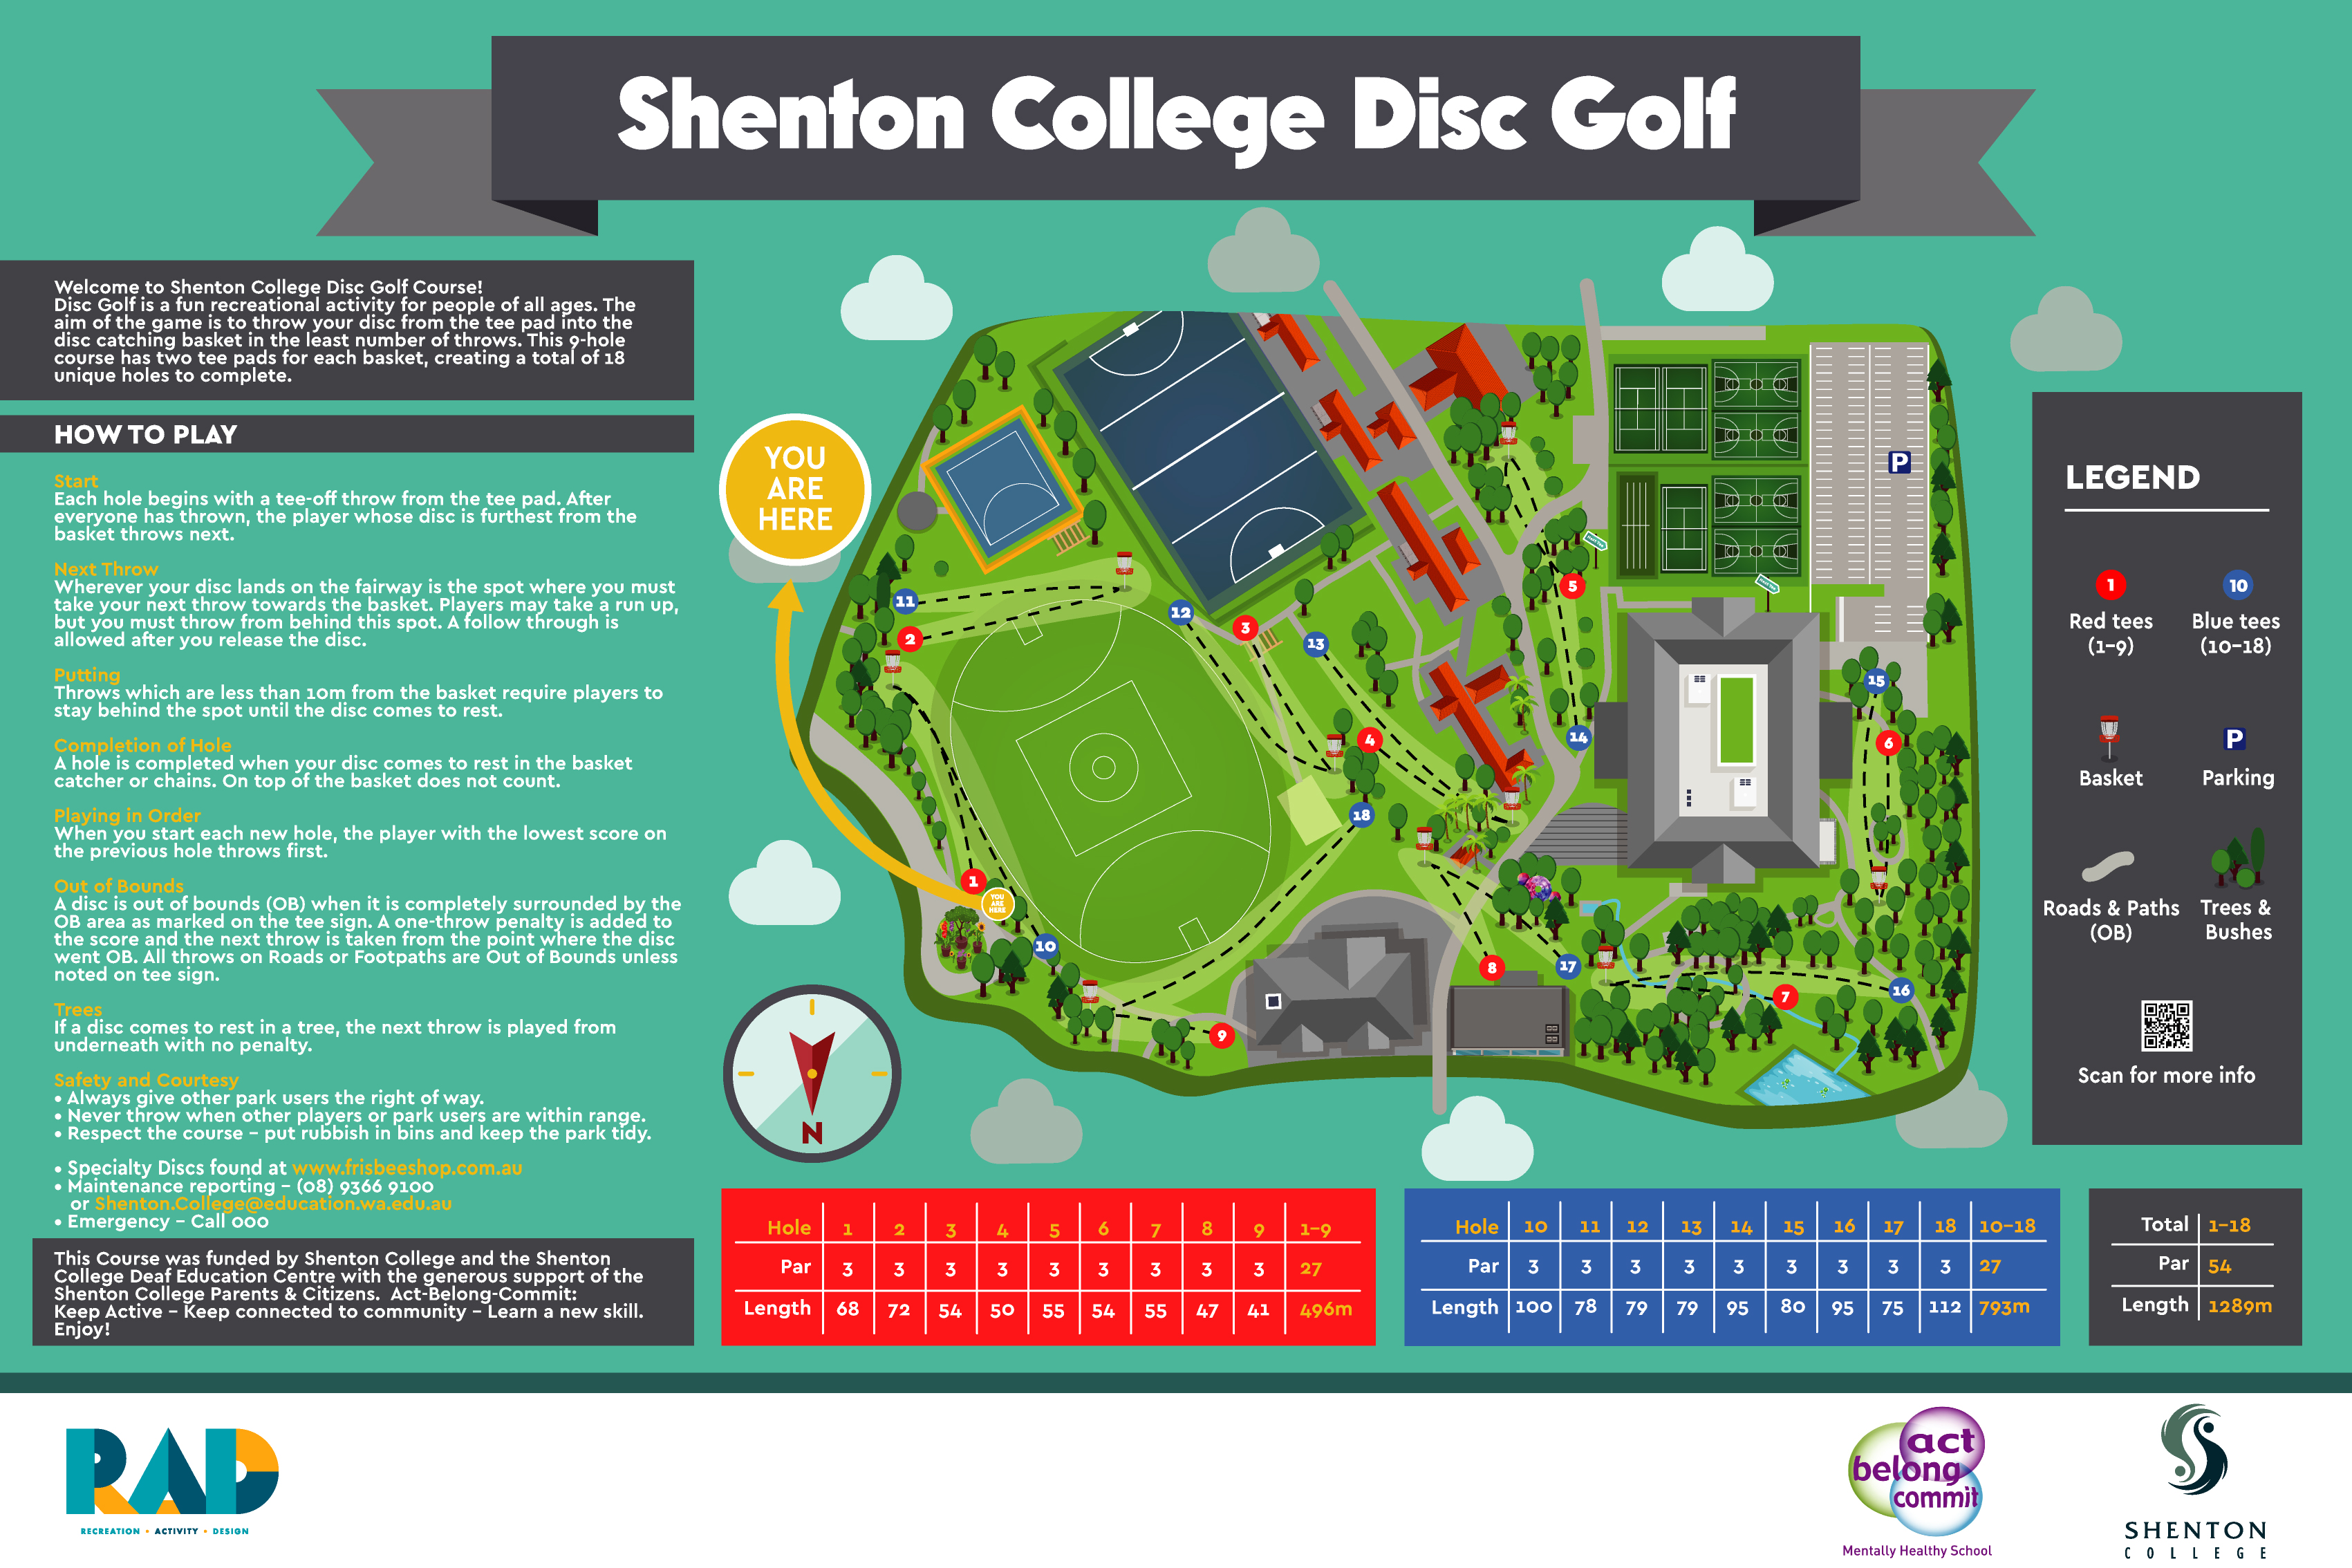 image of Shenton College Disc Golf map